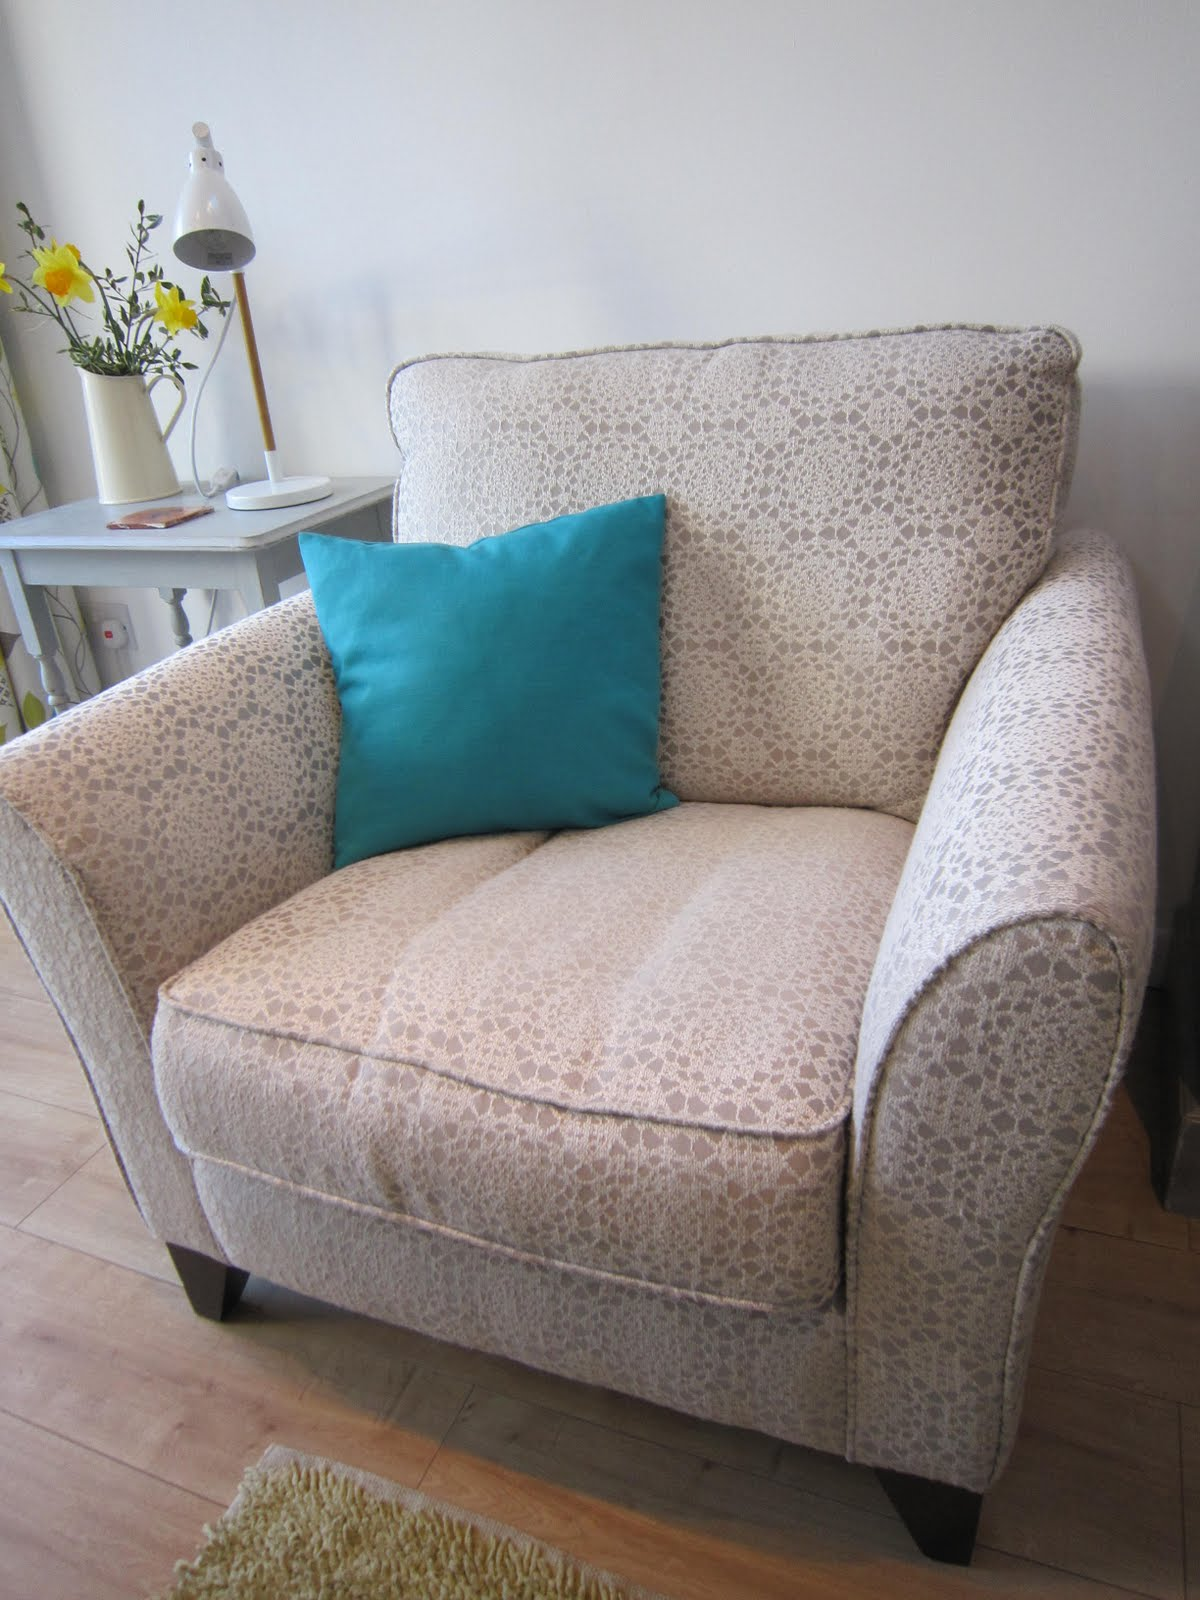 Super Comfy Chair Vintage Tea Time A Nice Big Comfy Chair